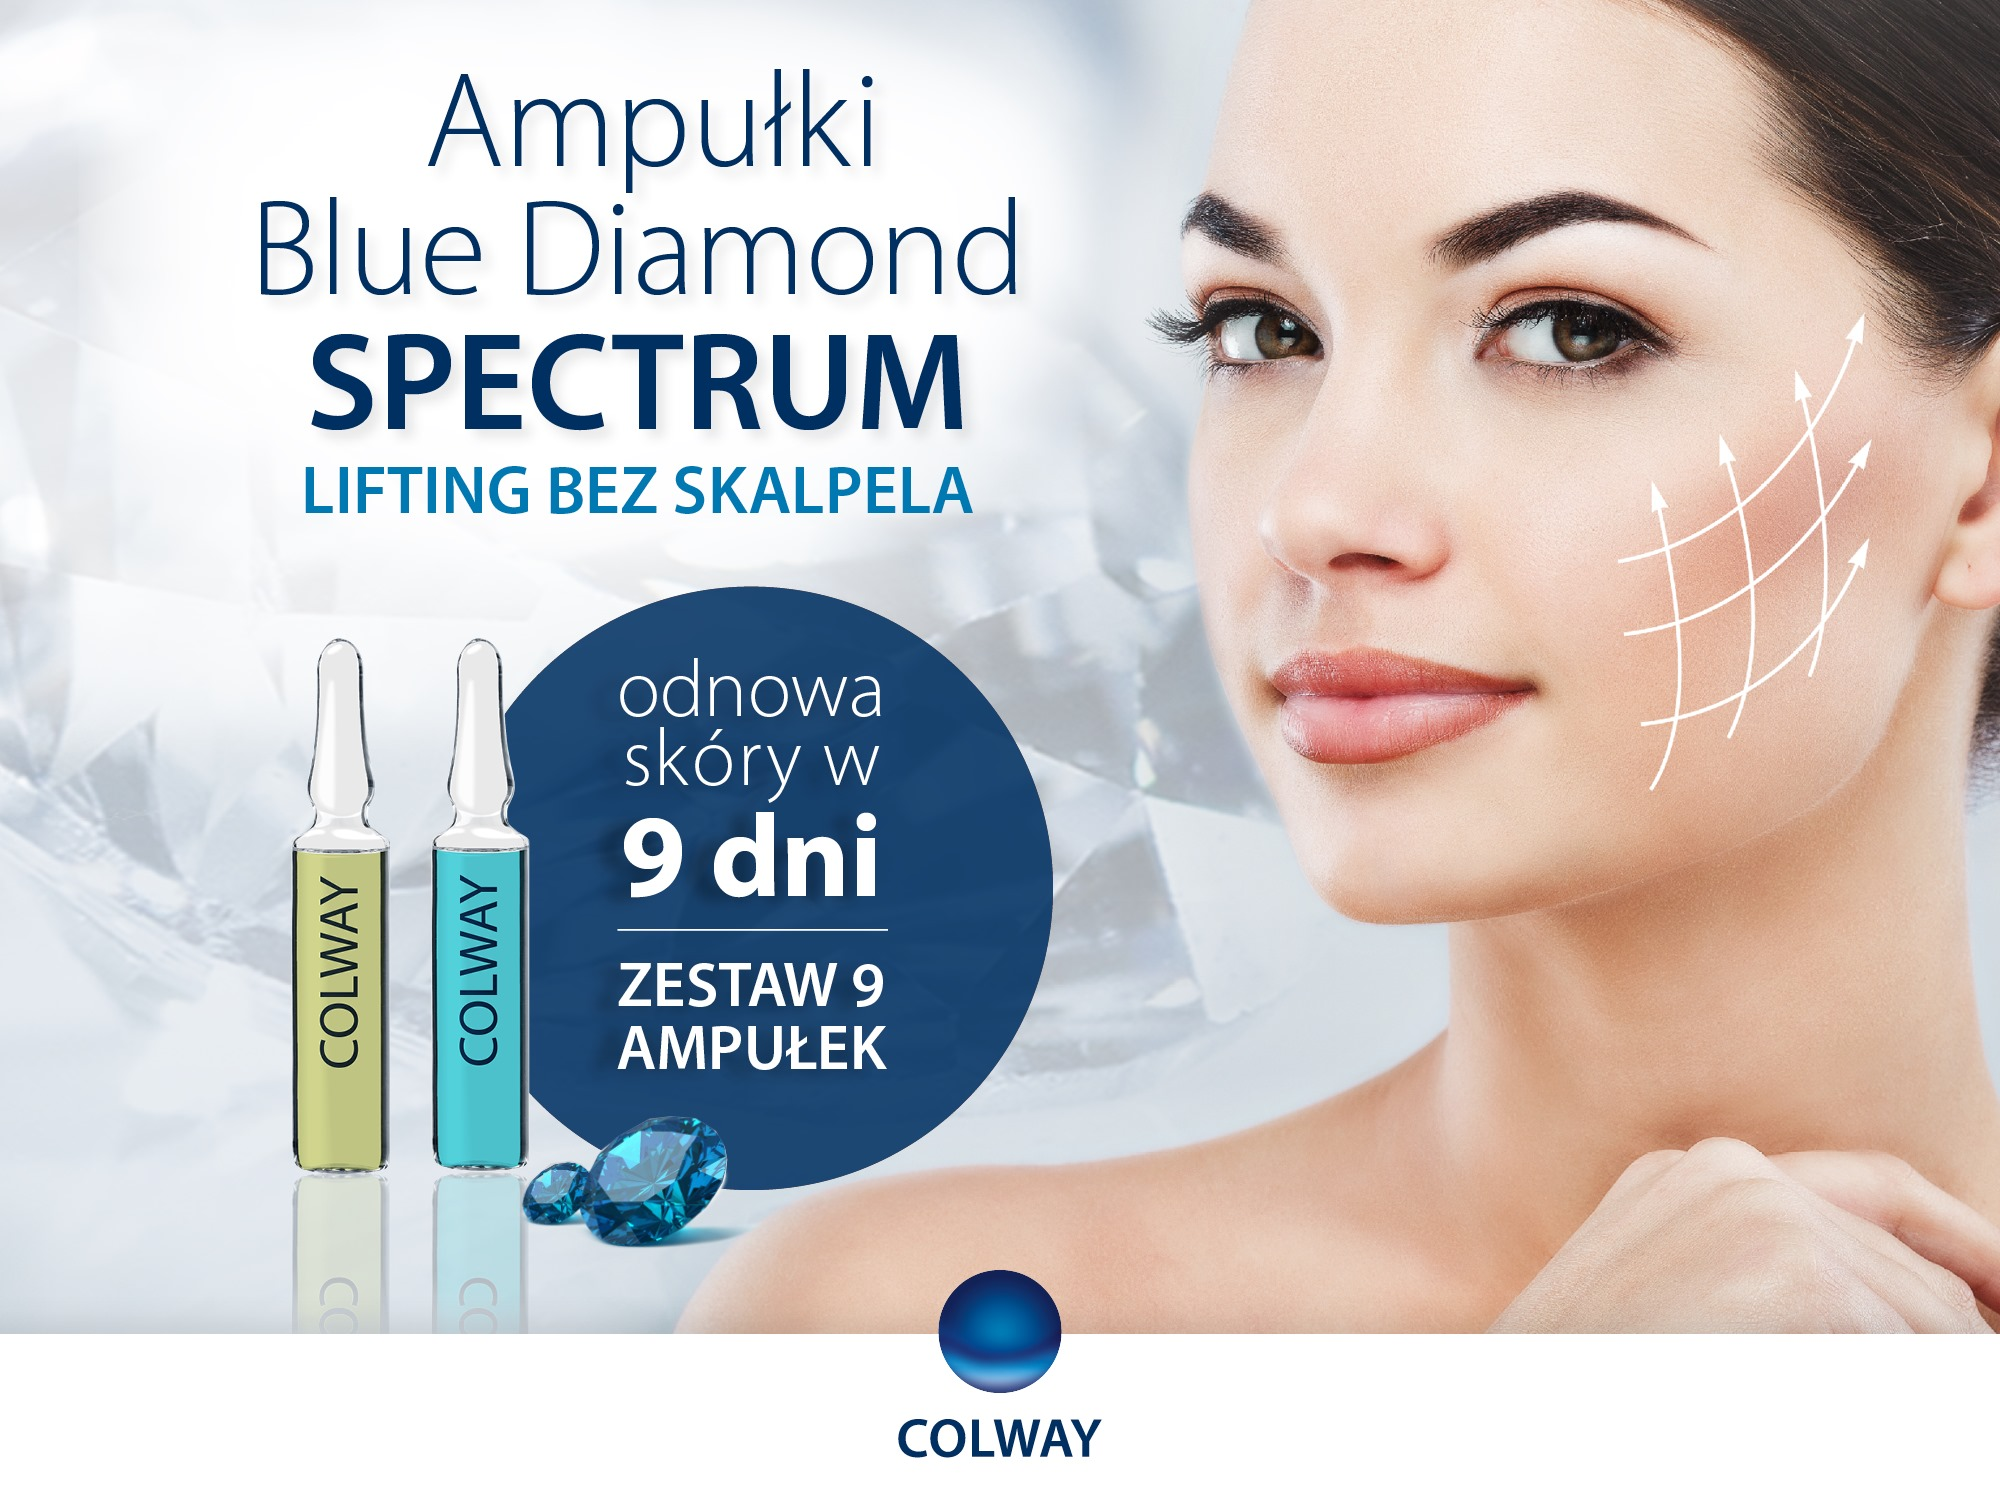 Ampułki BLUE DIAMOND SPECTRUM